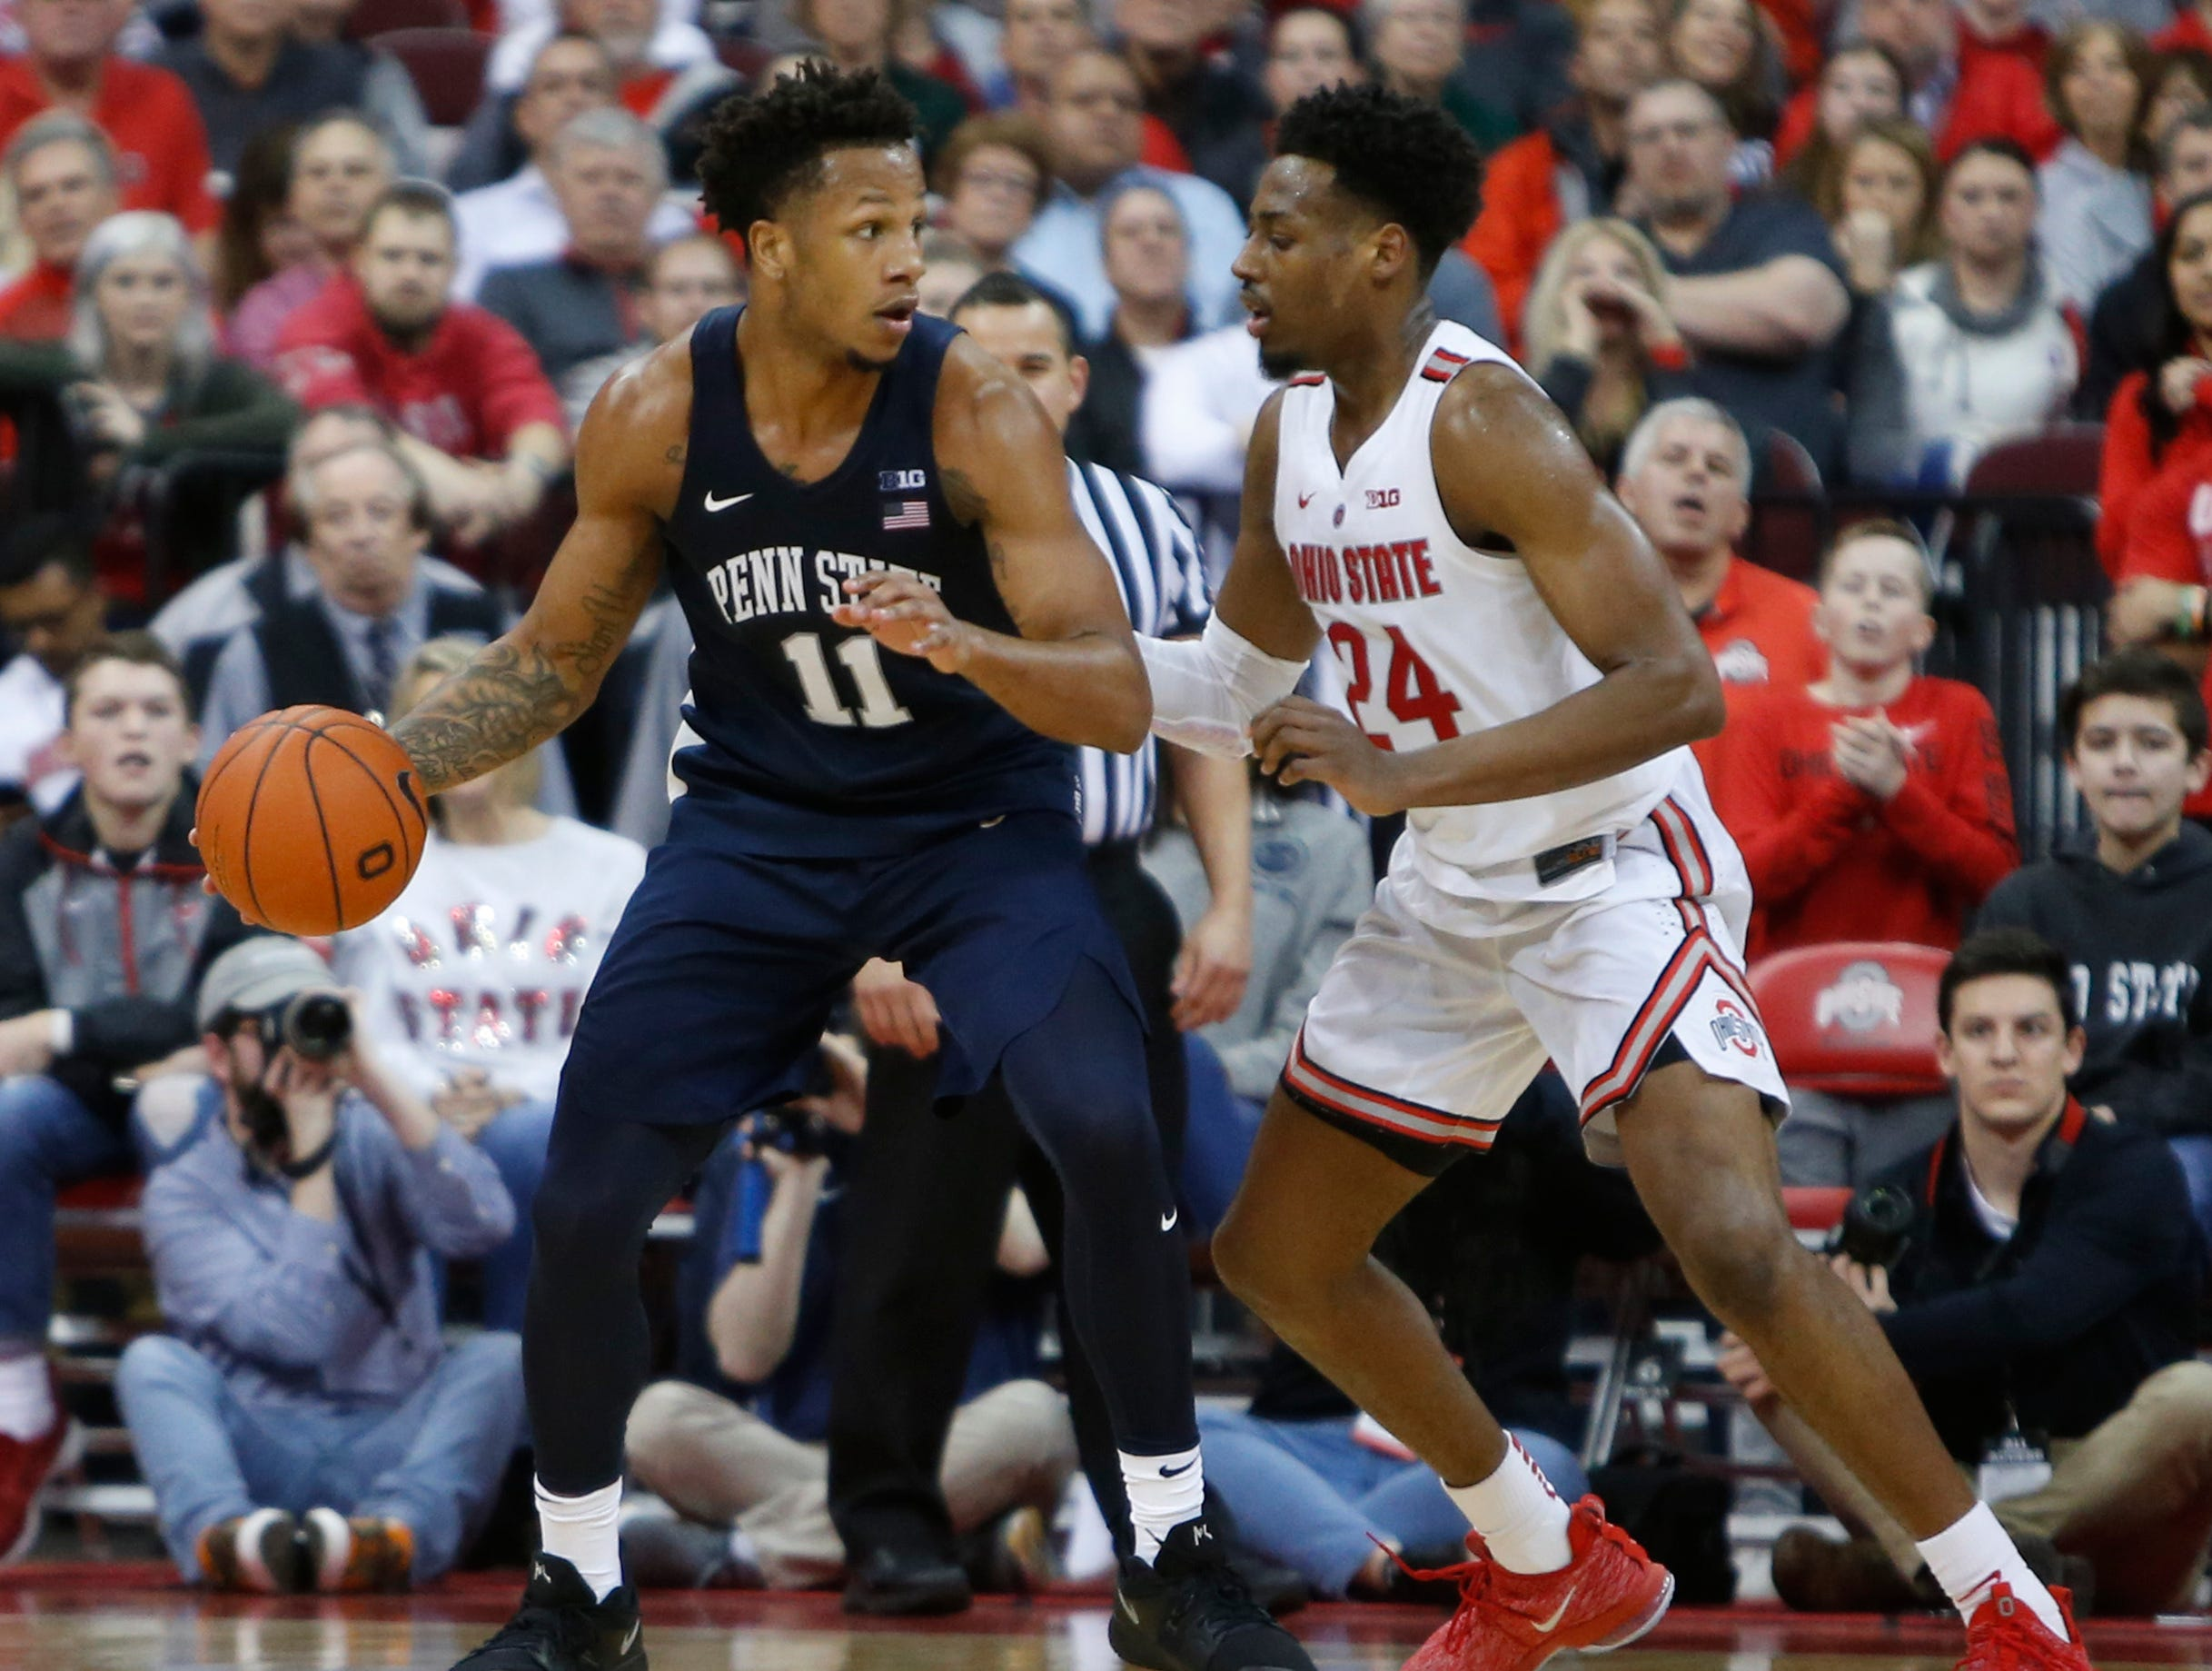 Penn State's Lamar Stevens, left, looks for an open pass as Ohio State's Andre Wesson defends during the second half of an NCAA college basketball game Thursday, Feb. 7, 2019, in Columbus, Ohio. Ohio State beat Penn State 74-70. (AP Photo/Jay LaPrete)